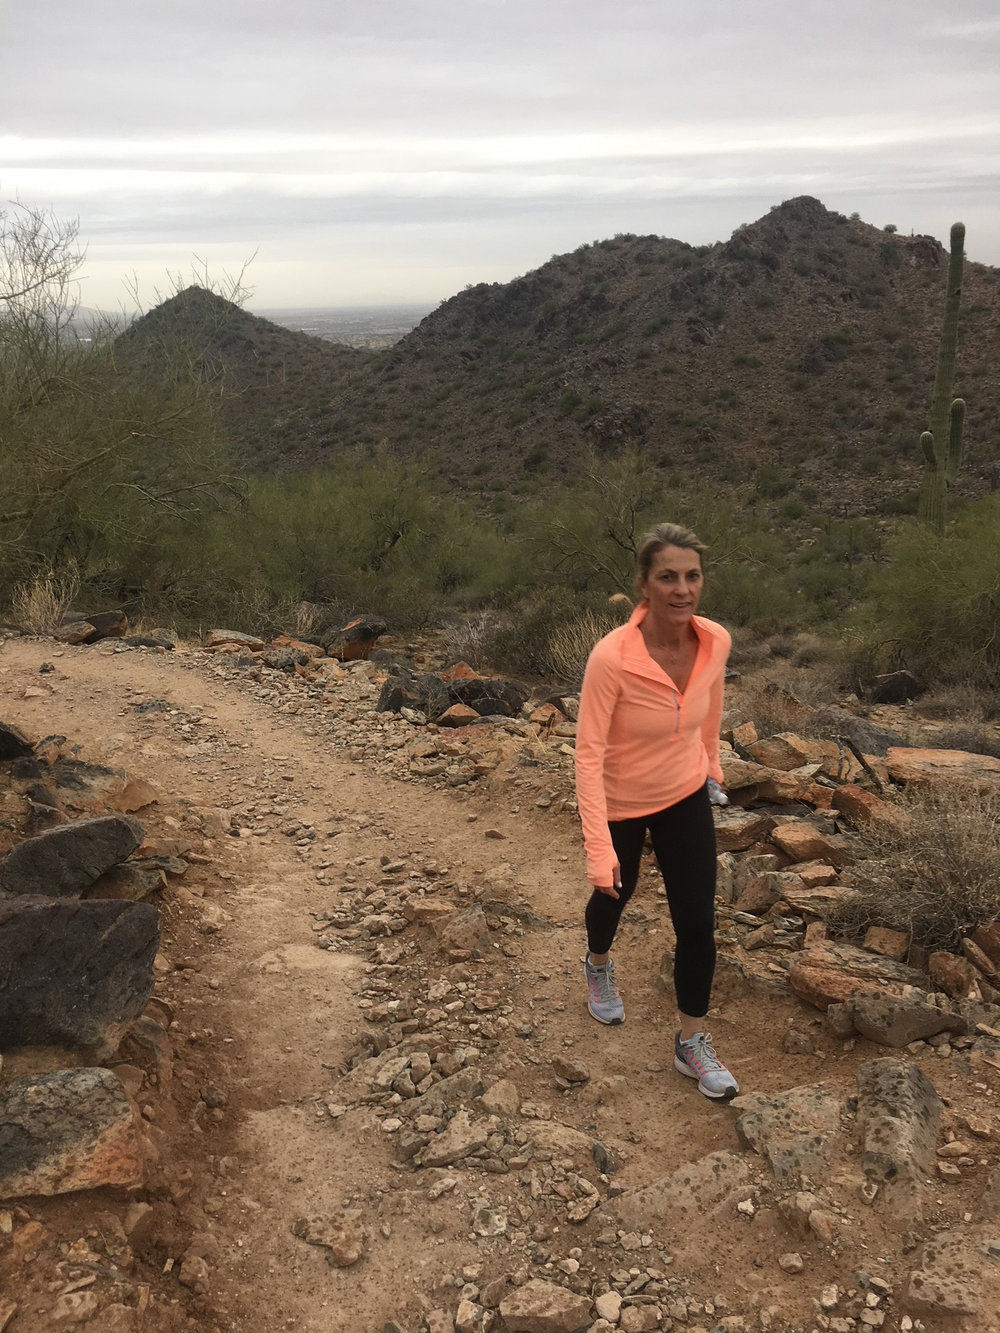 Enjoying the views and clear air at the Sonoran Preserve.